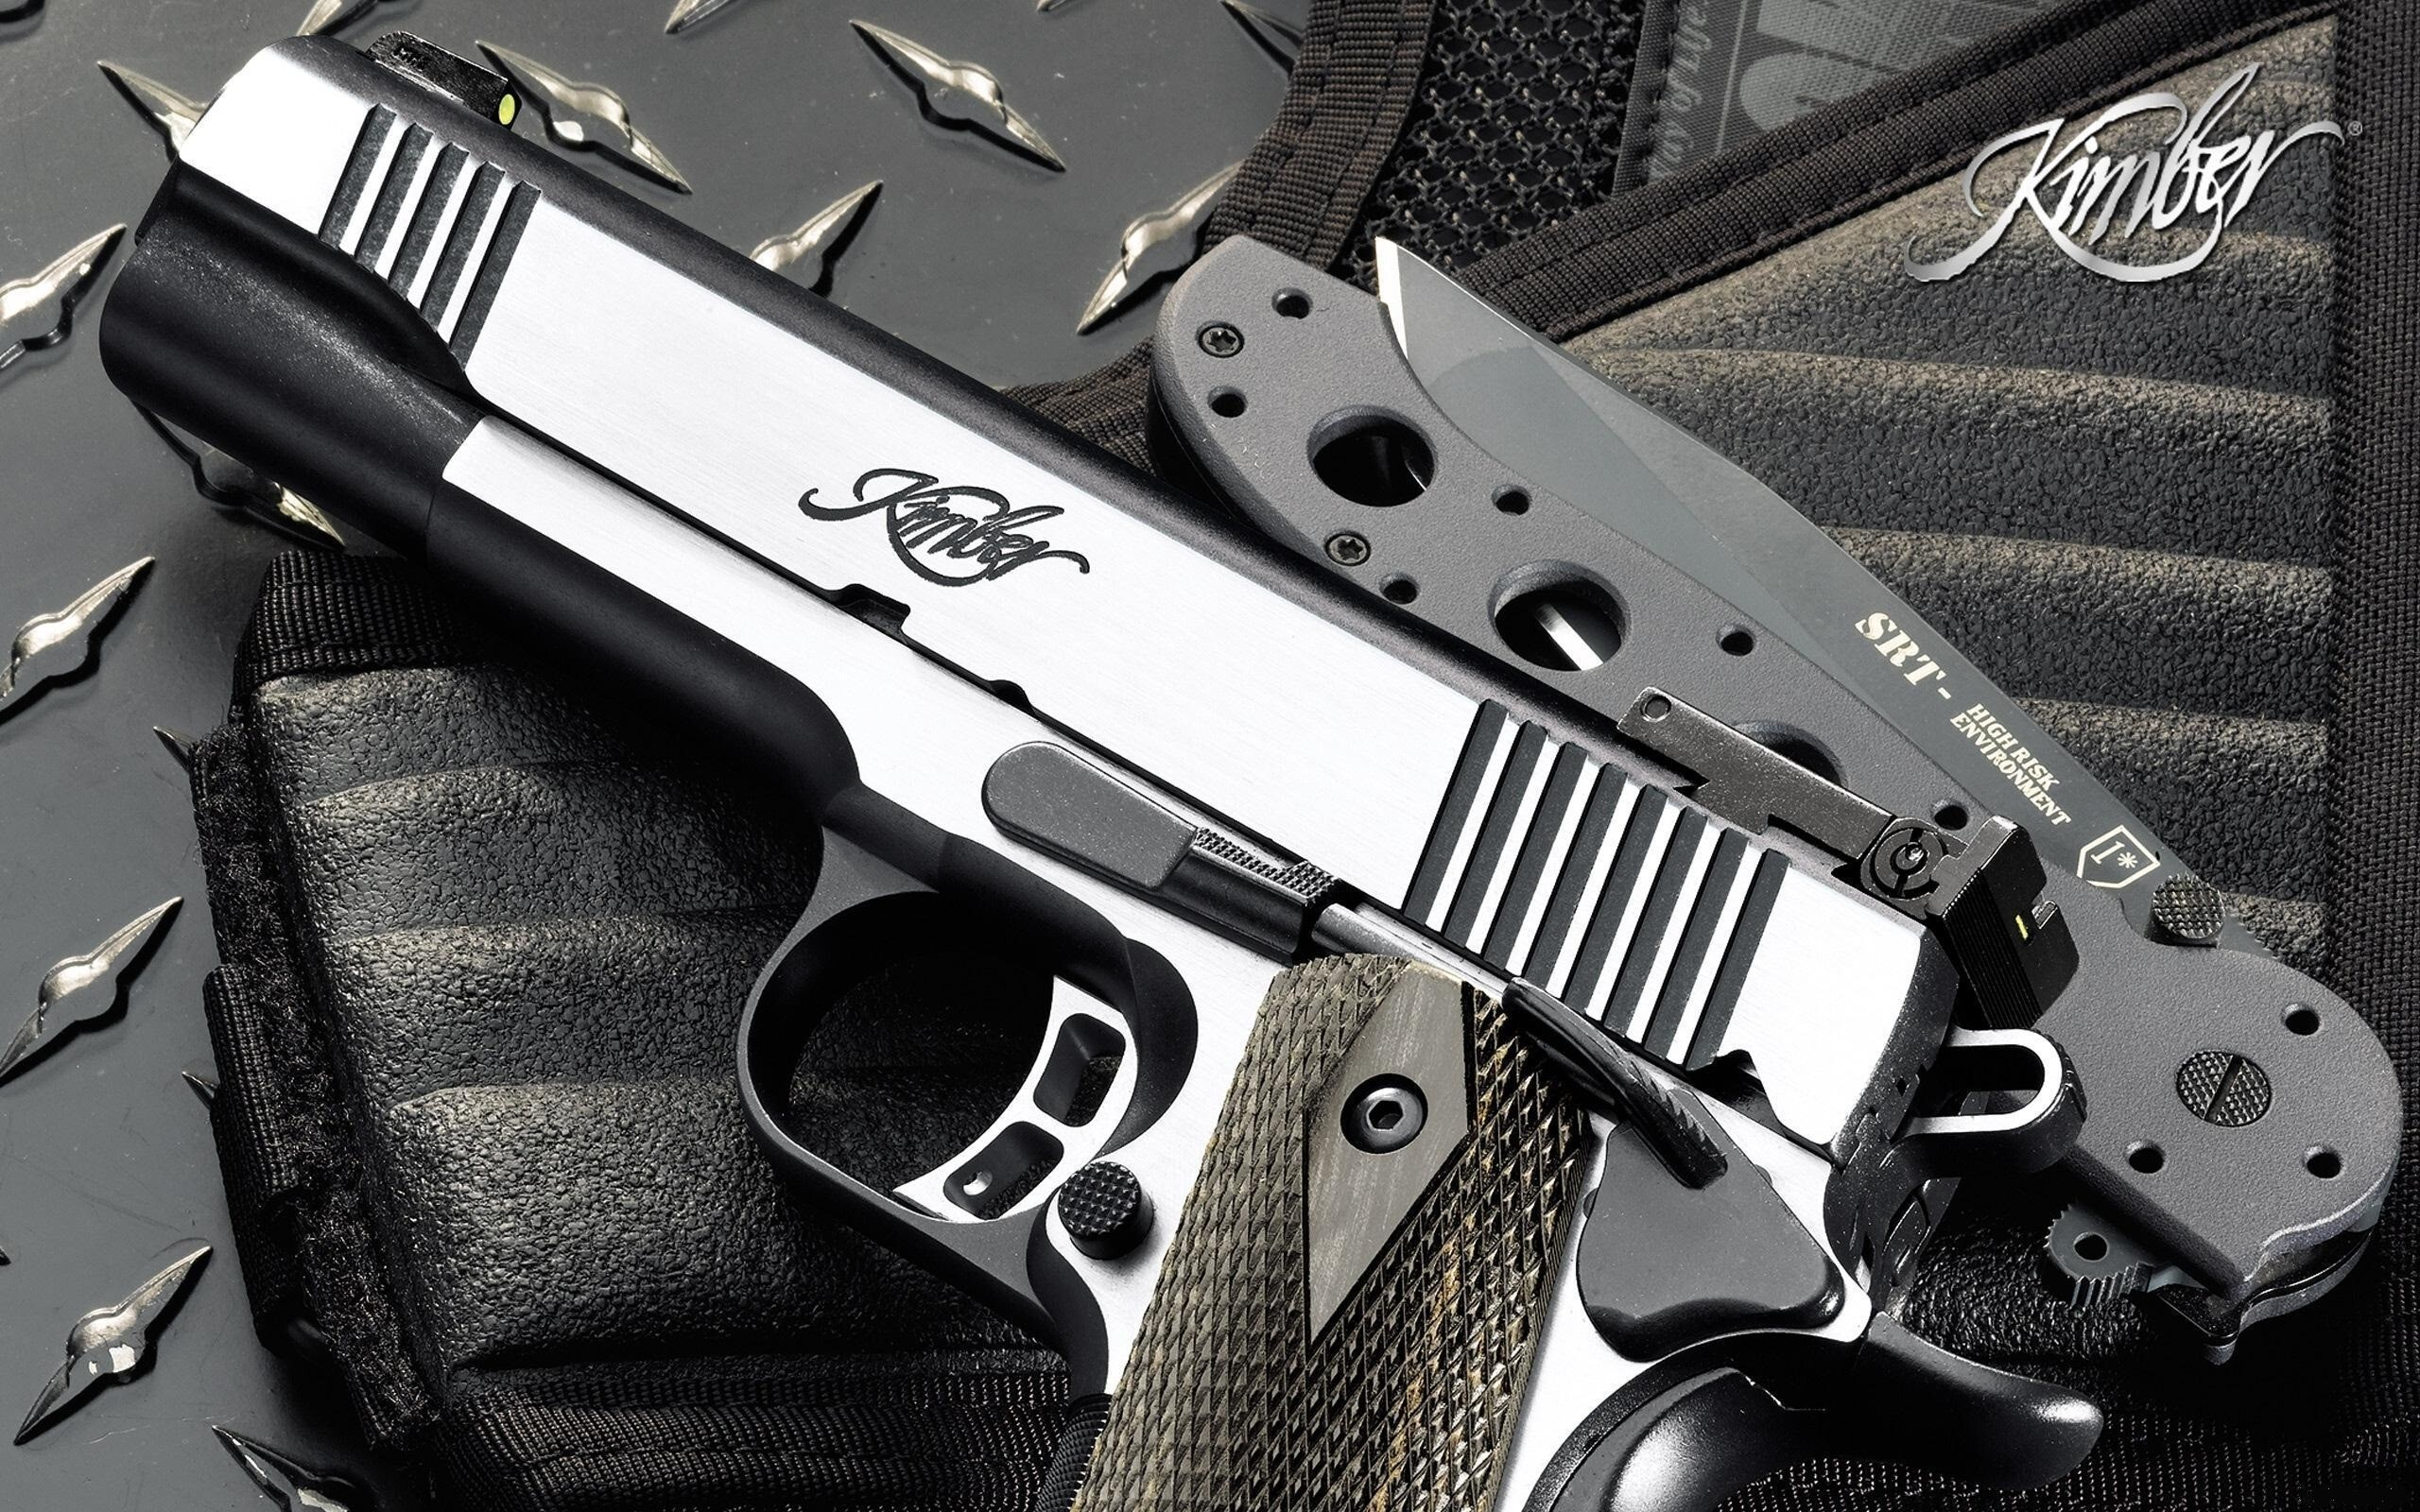 weapons wallpapers   free download hd new guns, knife, rifle images